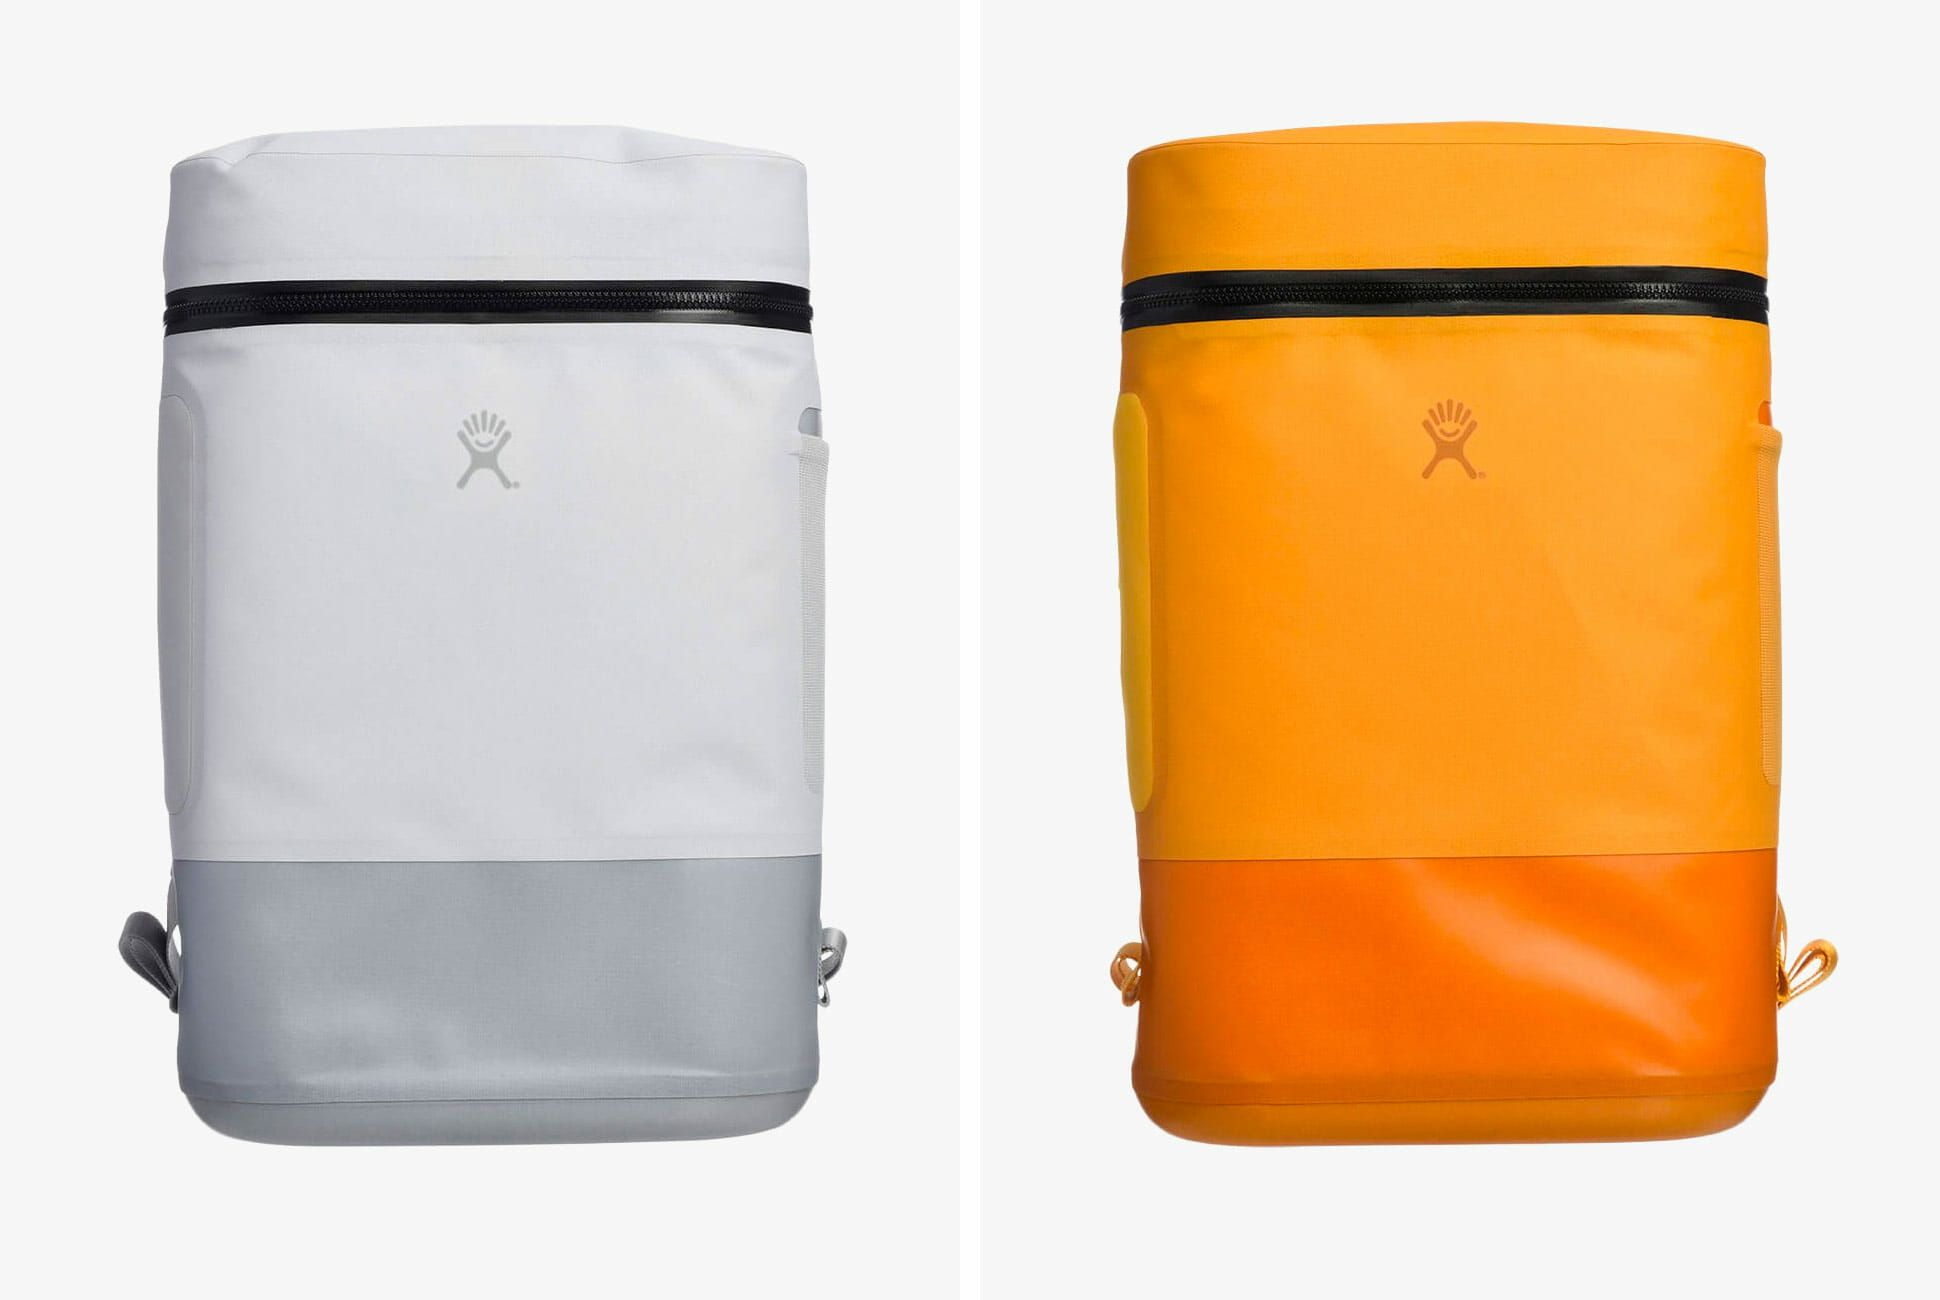 You Can Buy Several Six Packs With the Money You'll Save on This Awesome Cooler Pack